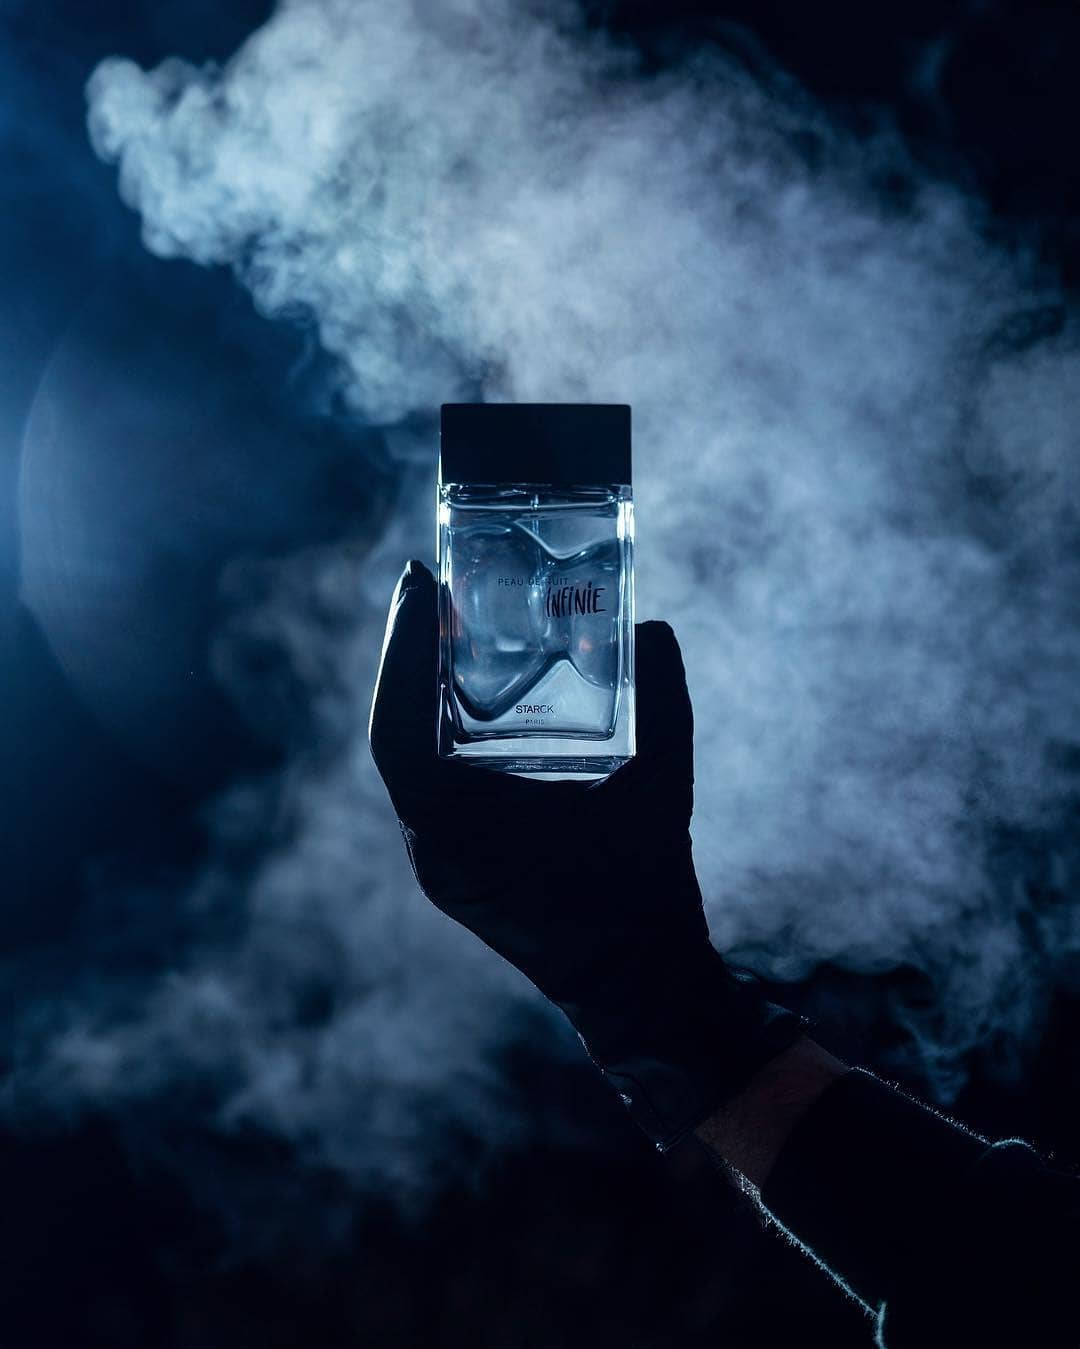 A leathery hint, with an animal yet velvety feel, a touch of dense, dark and sensual tenderness. @starck Photo by @nmastoras #starckparfums #PhilippeStarck #Starck #PeauDeNuitInfini #MaNuitInfini #StarckParfumsTribe